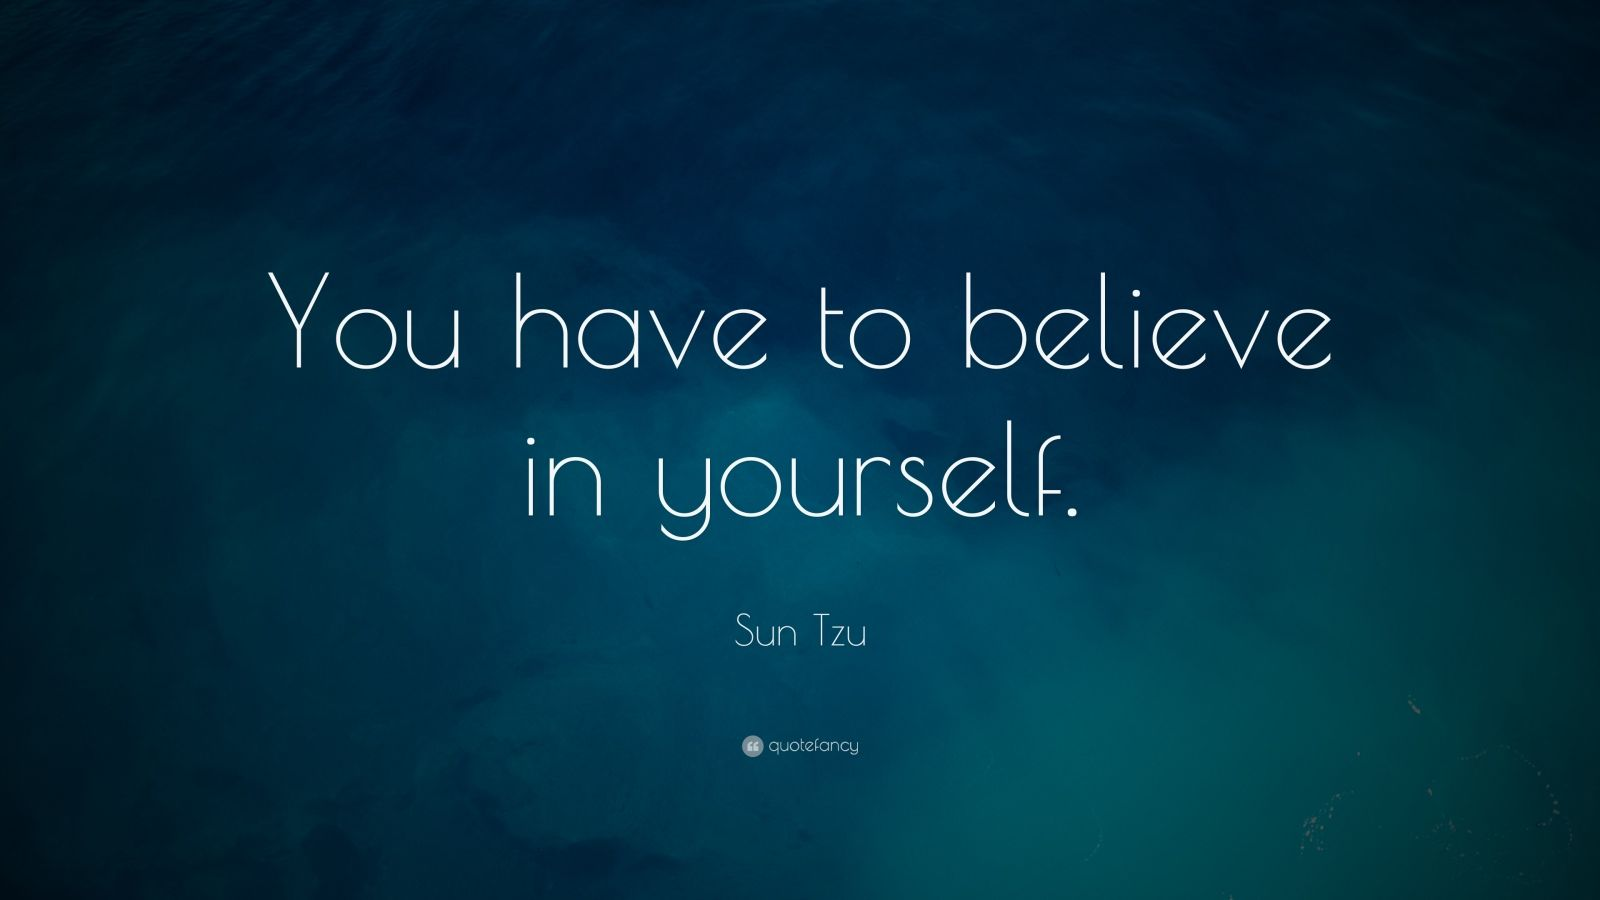 Theodore Roosevelt Wallpaper Quote Sun Tzu Quote You Have To Believe In Yourself 23